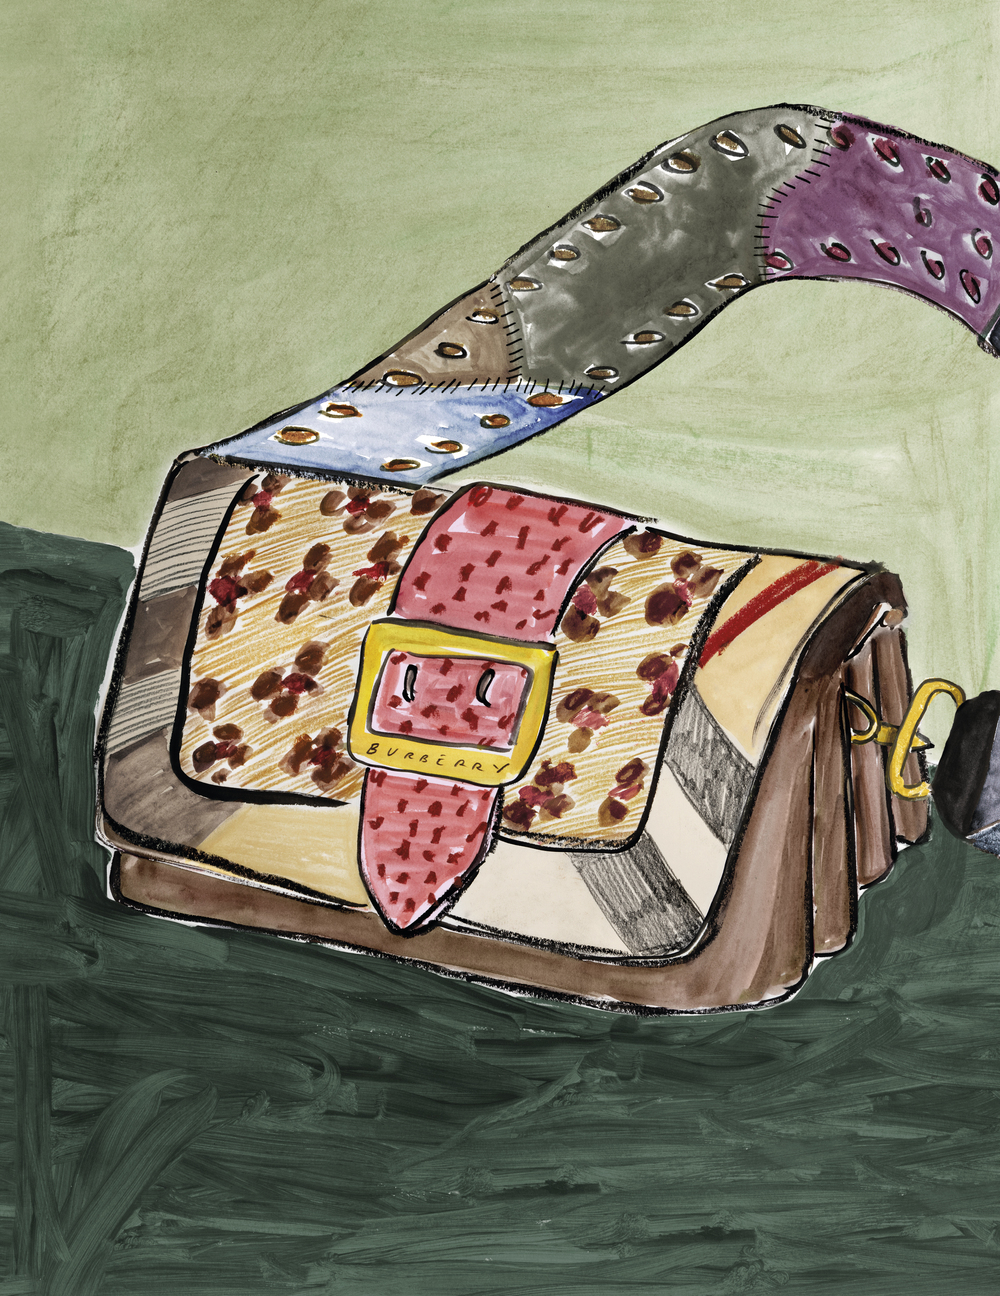 Illustration of The Patchwork by Luke Edward Hall for Burberry - on embargo until 31 May, 8AM UK time_001.jpg